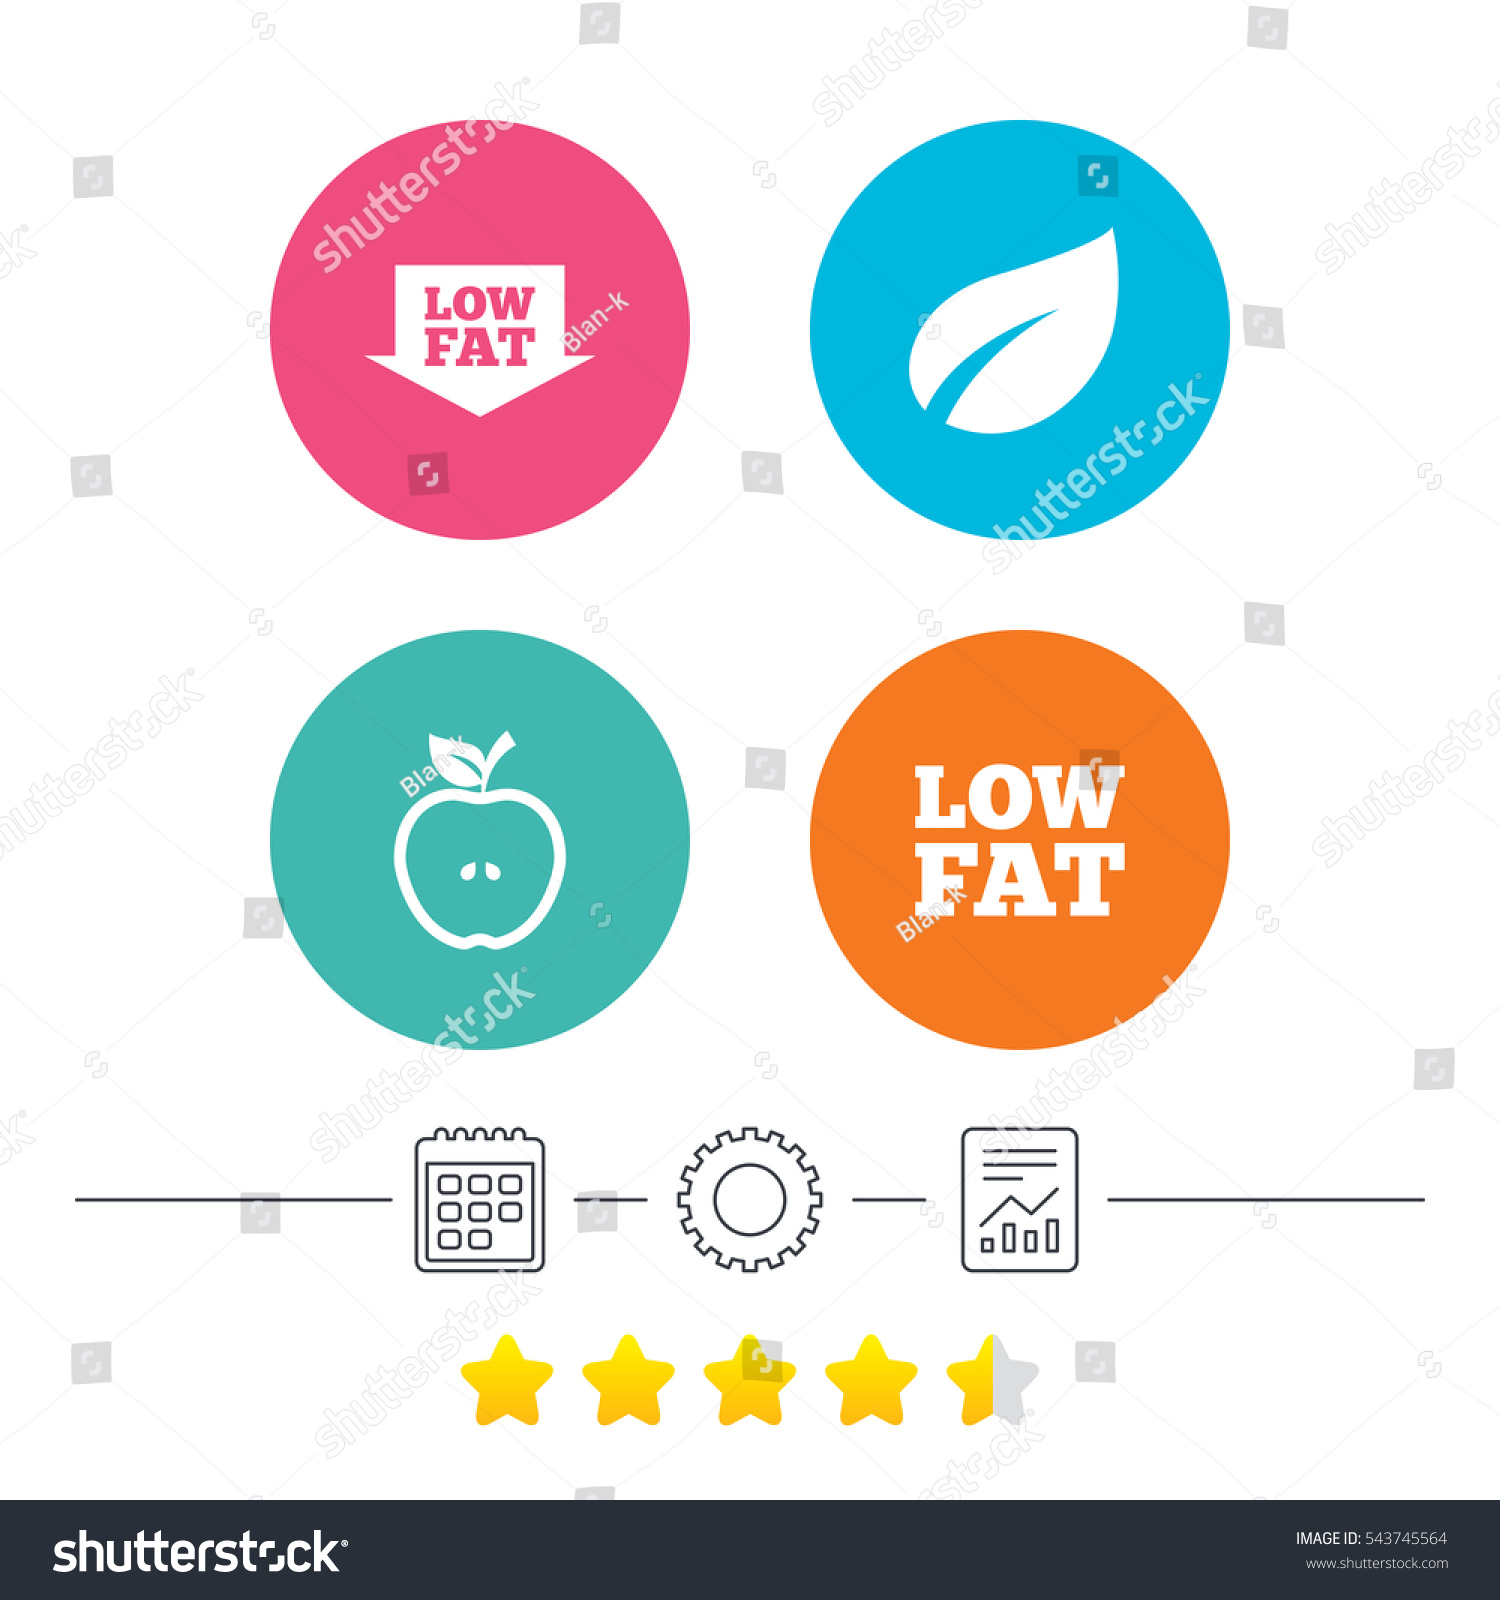 Low fat arrow icons diets vegetarian stock vector 543745564 low fat arrow icons diets and vegetarian food signs apple with leaf symbol buycottarizona